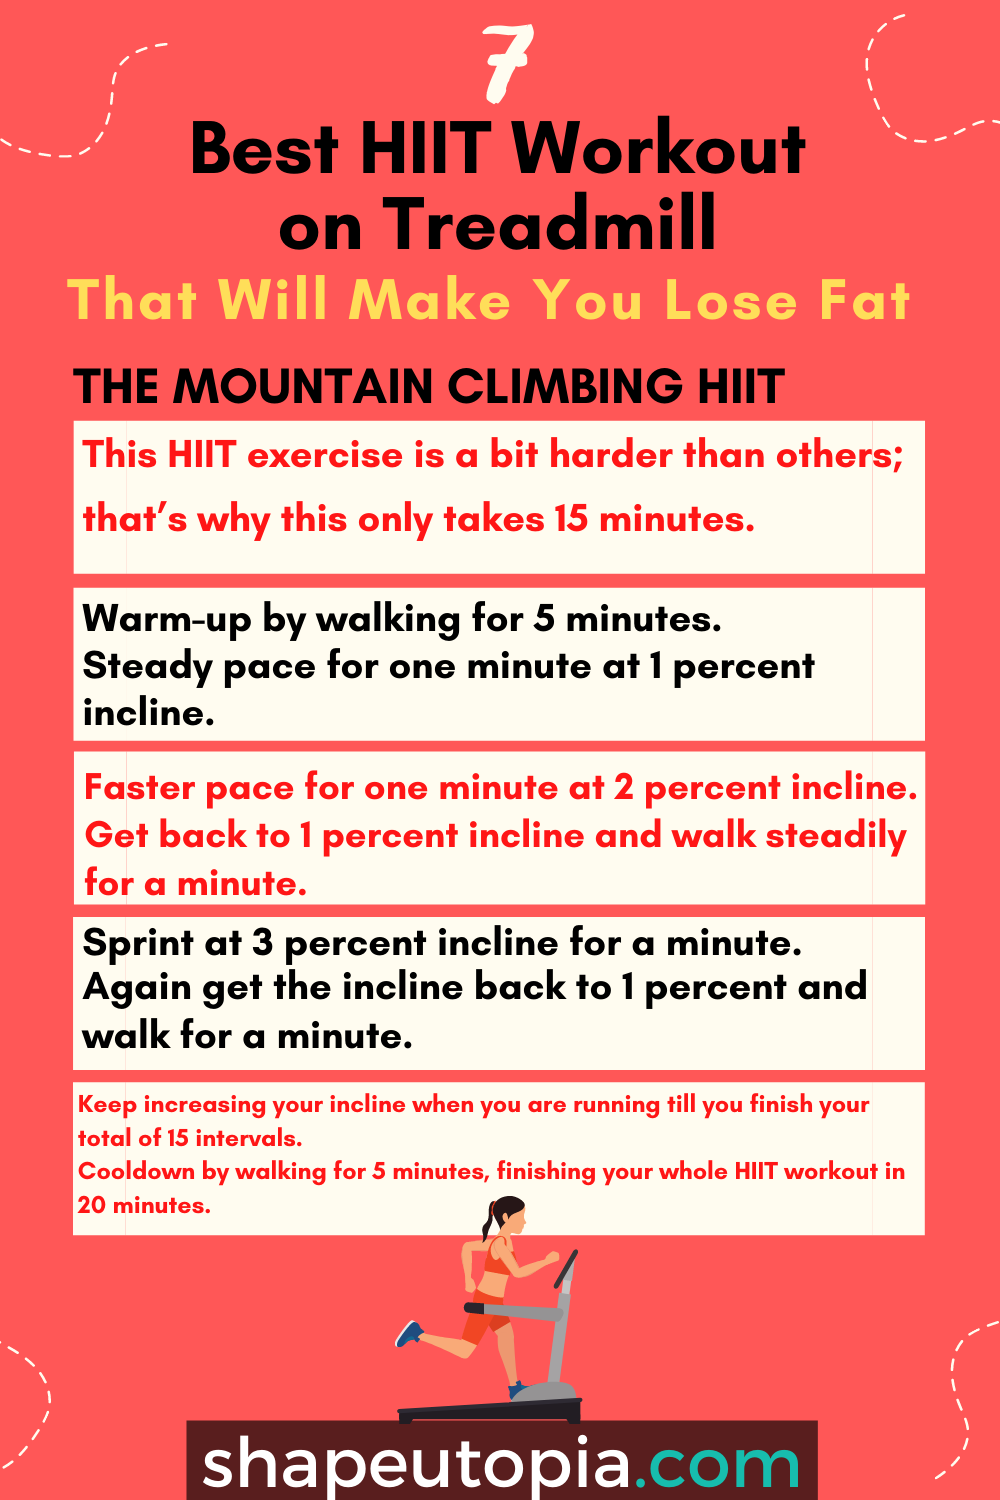 mountain 7 Best HIIT Workout on Treadmill That Will Make You Lose Fat